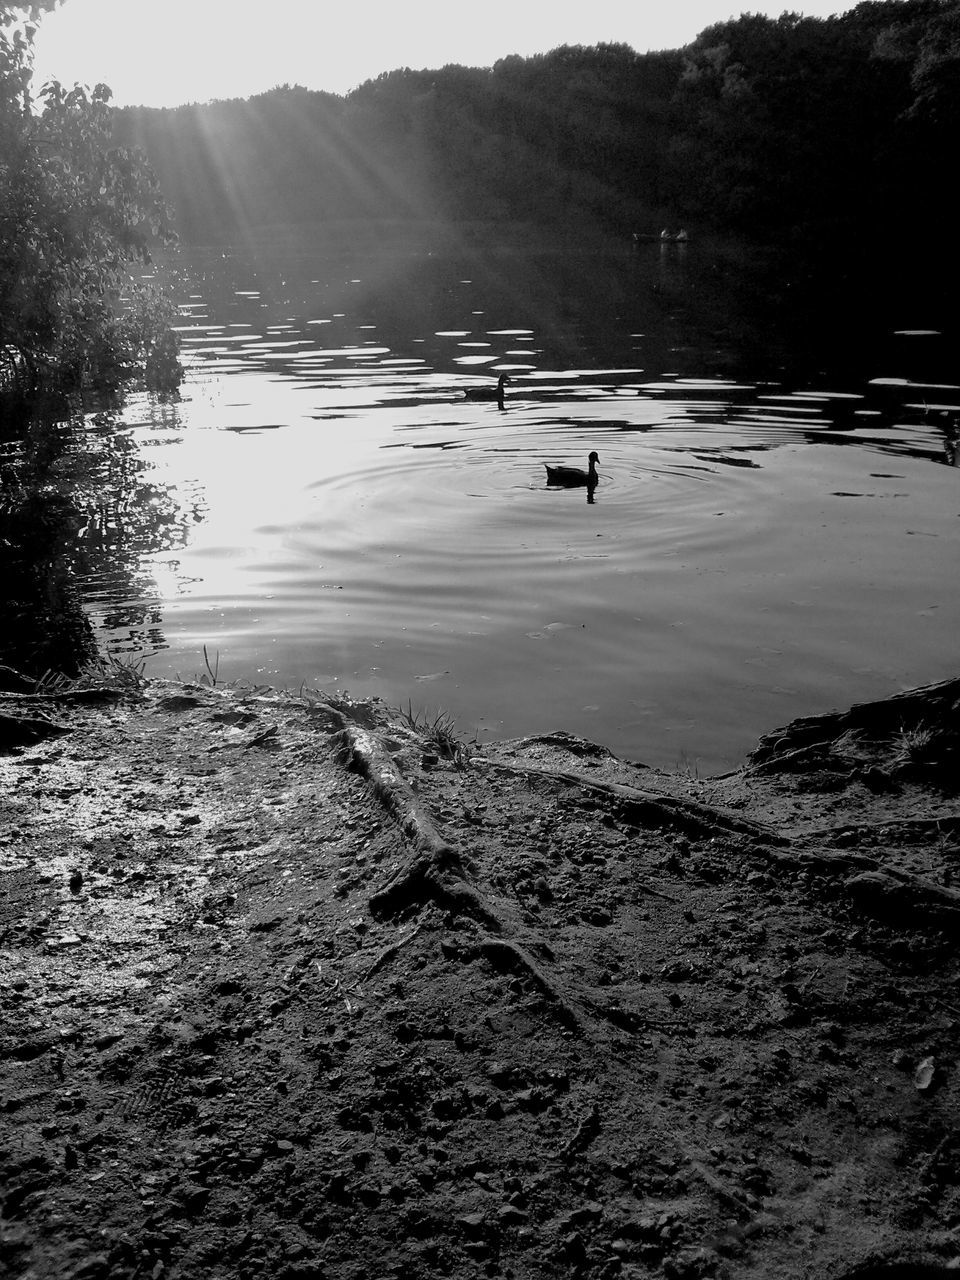 water, nature, lake, outdoors, tree, tranquility, day, animal themes, beauty in nature, no people, bird, scenics, animals in the wild, sky